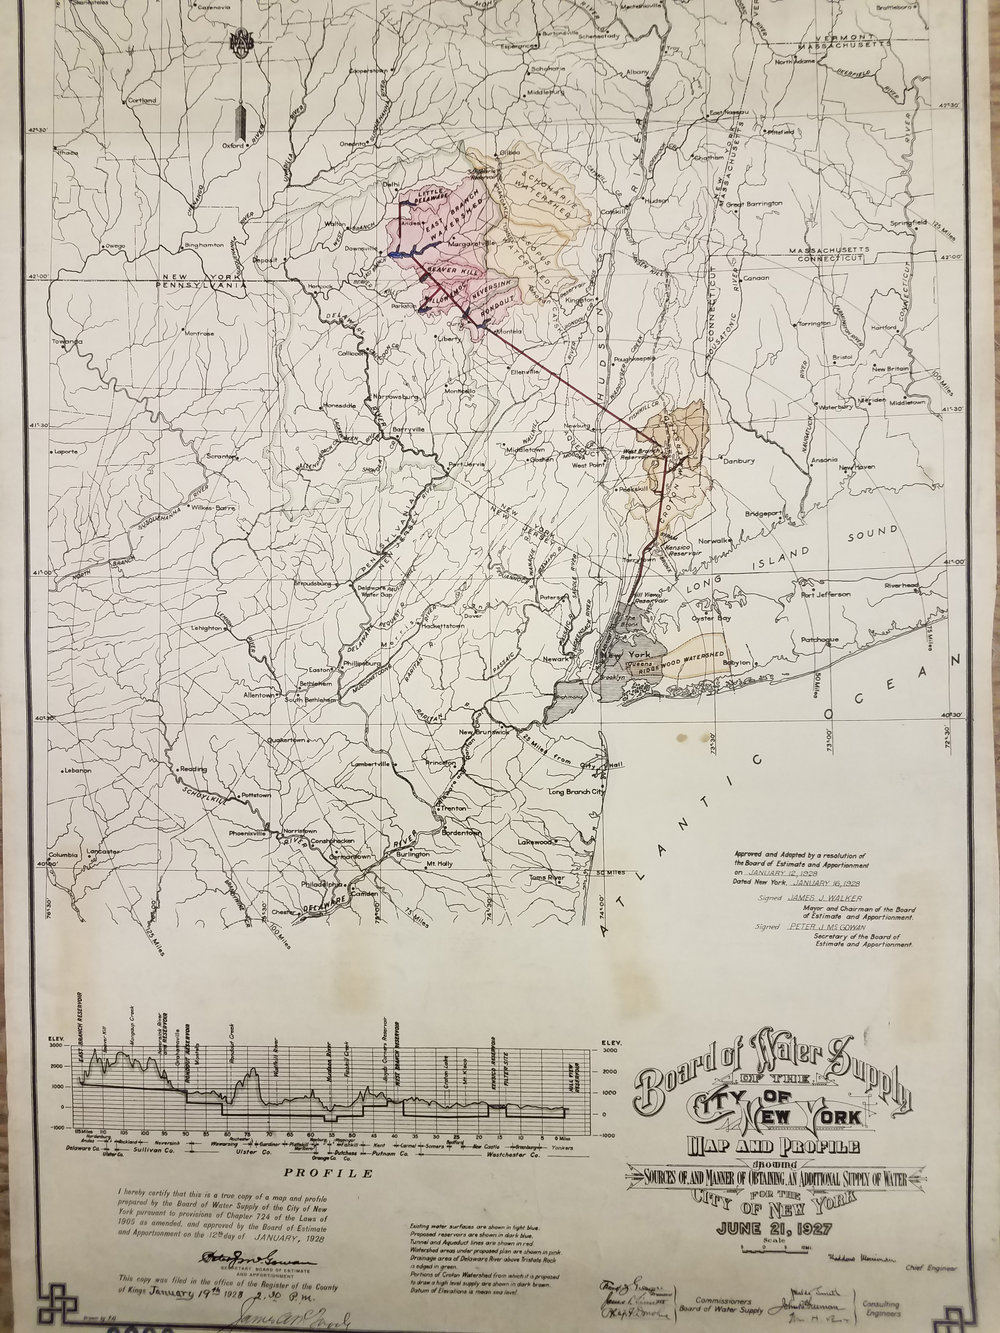 Map and Profile Showing Source of and Manner of Obtaining an Additional Supply of Water for the City of New York, 1905. Board of Estimate and Apportionment collection, NYC Municipal Archives.